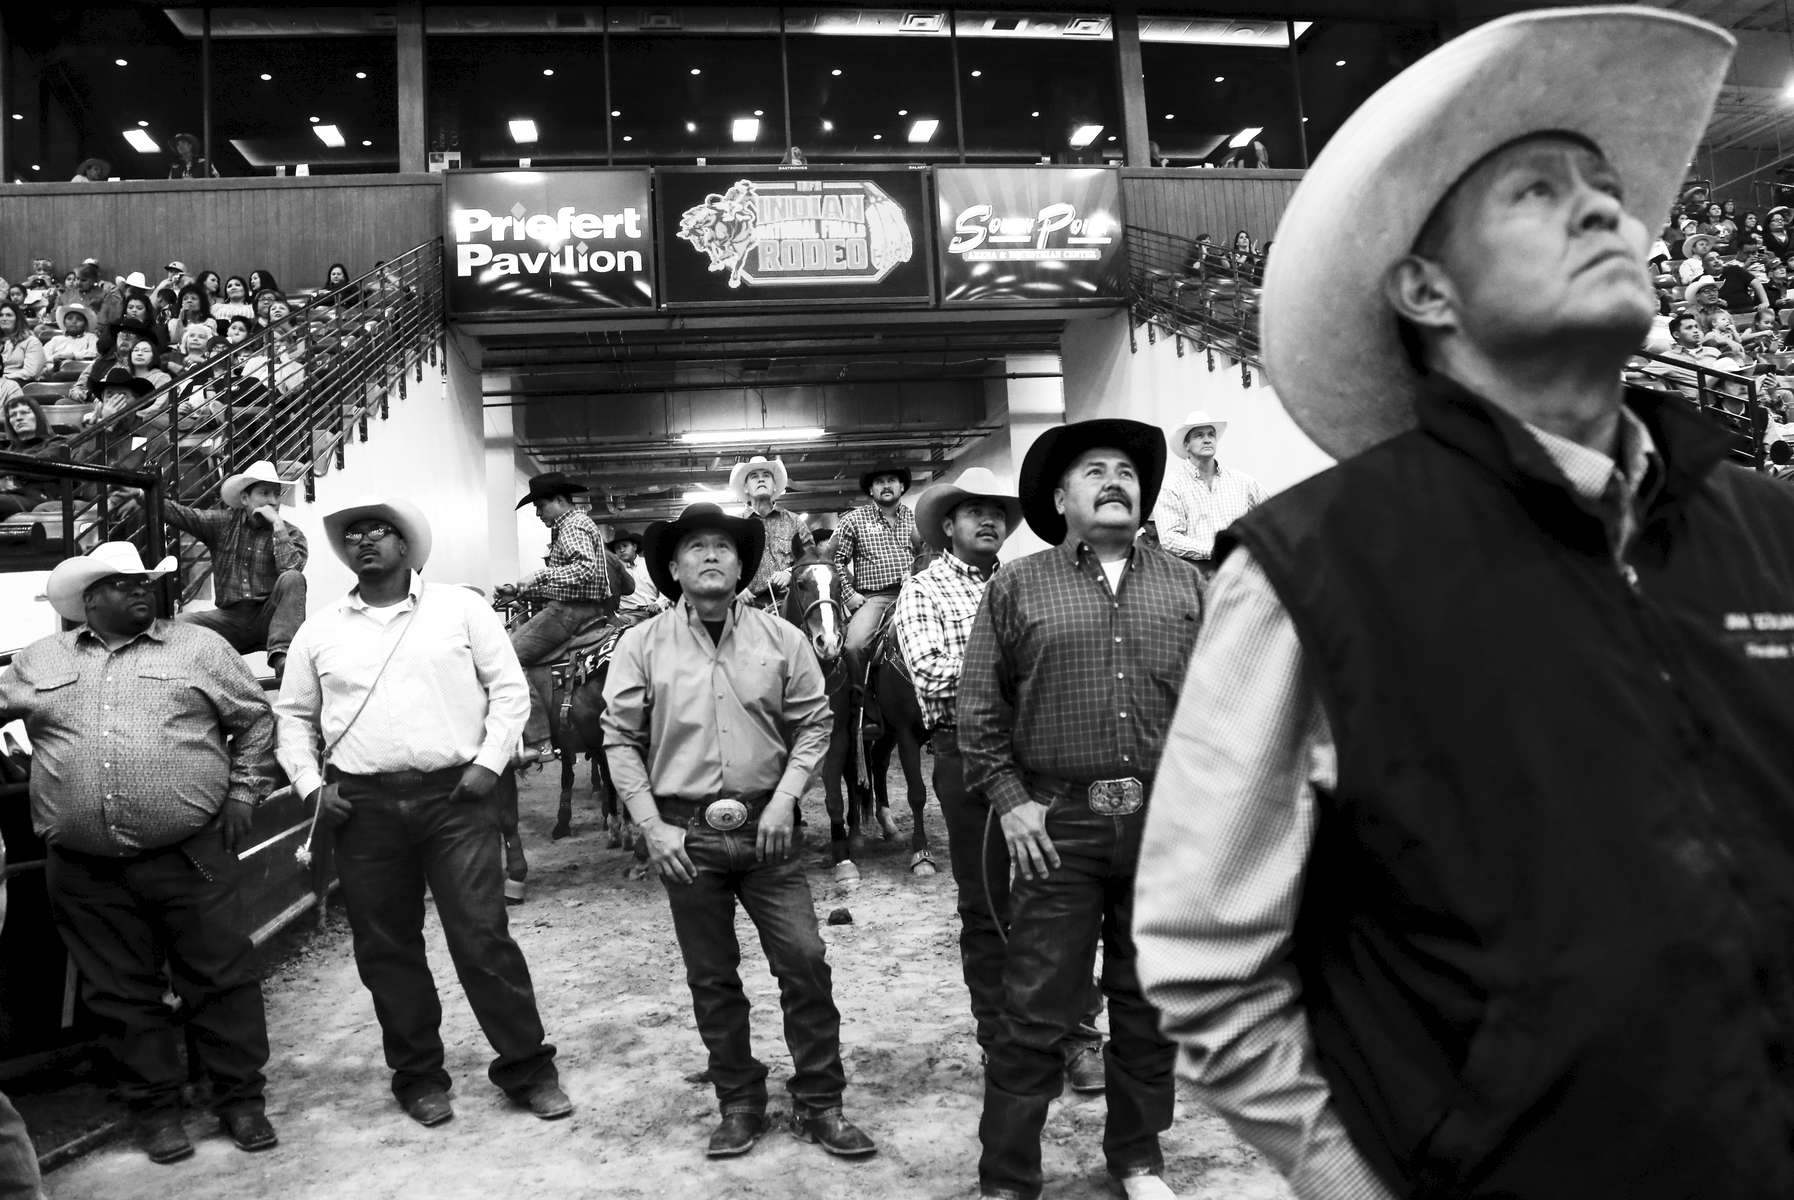 Contestants and the public watch the competition during the 2019 Indian National Finals Rodeo in Las Vegas, Nevada on October 25, 2019.